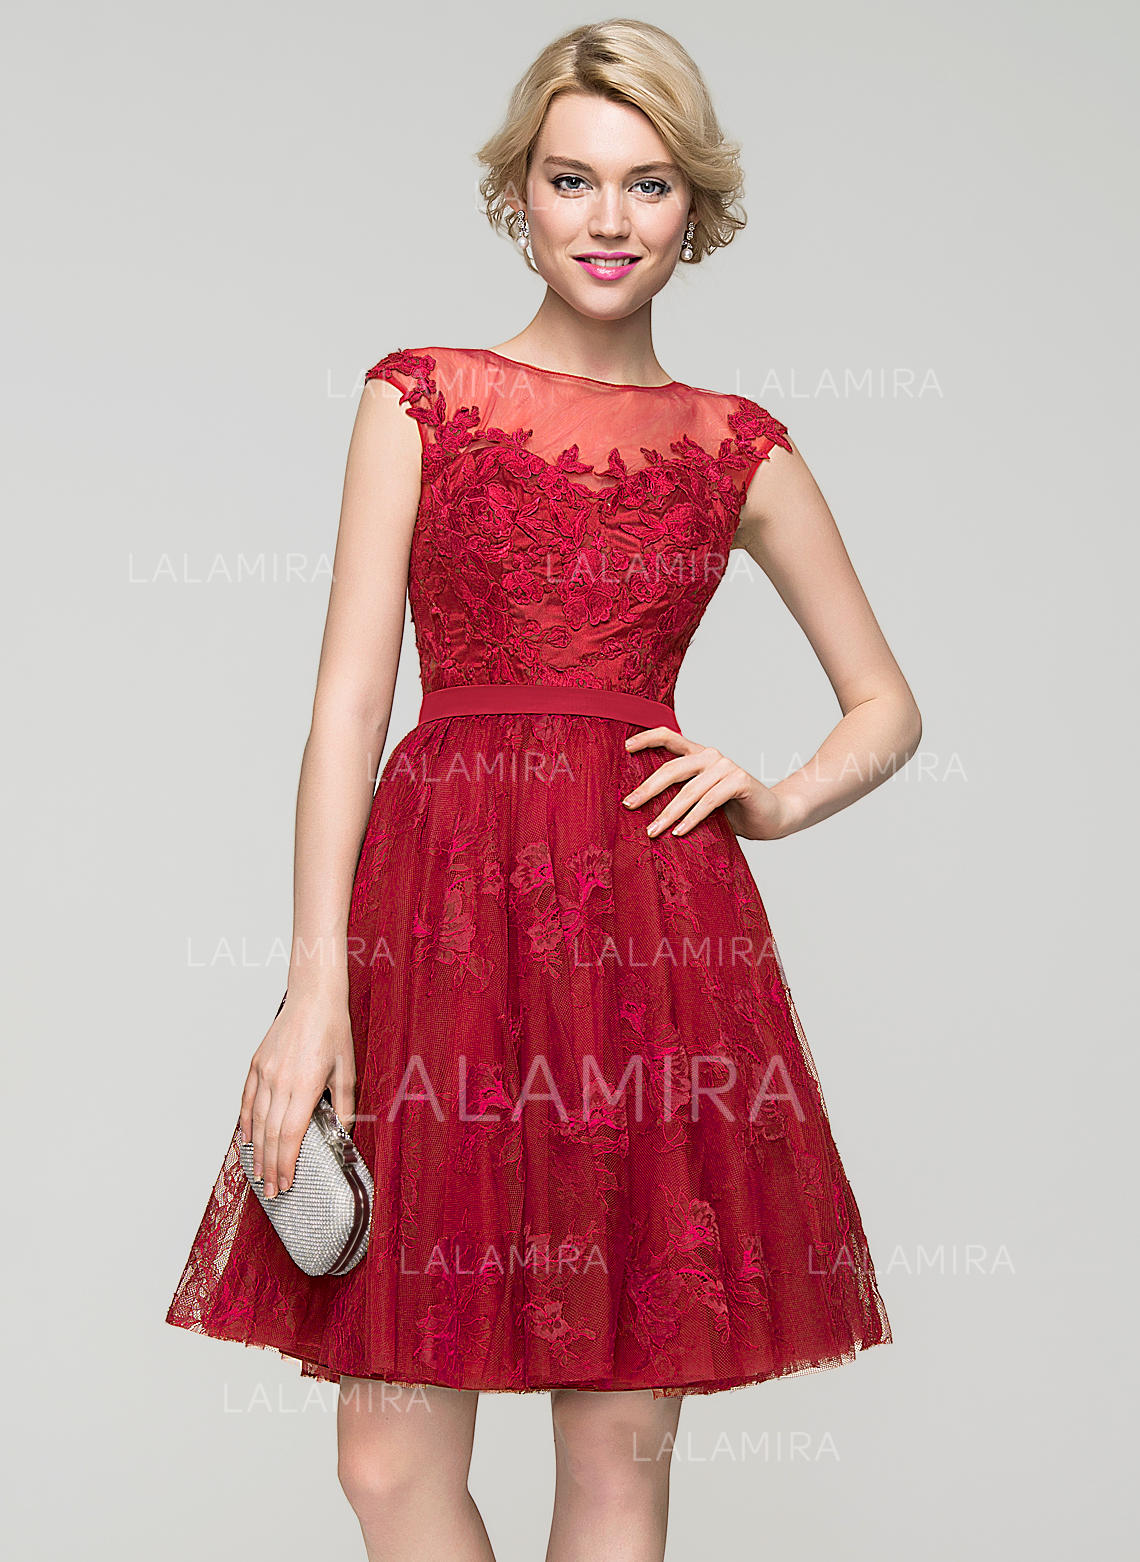 c4dac30fc1b A-Line Princess Knee-Length Homecoming Dresses Scoop Neck Tulle Lace  Sleeveless (. Loading zoom